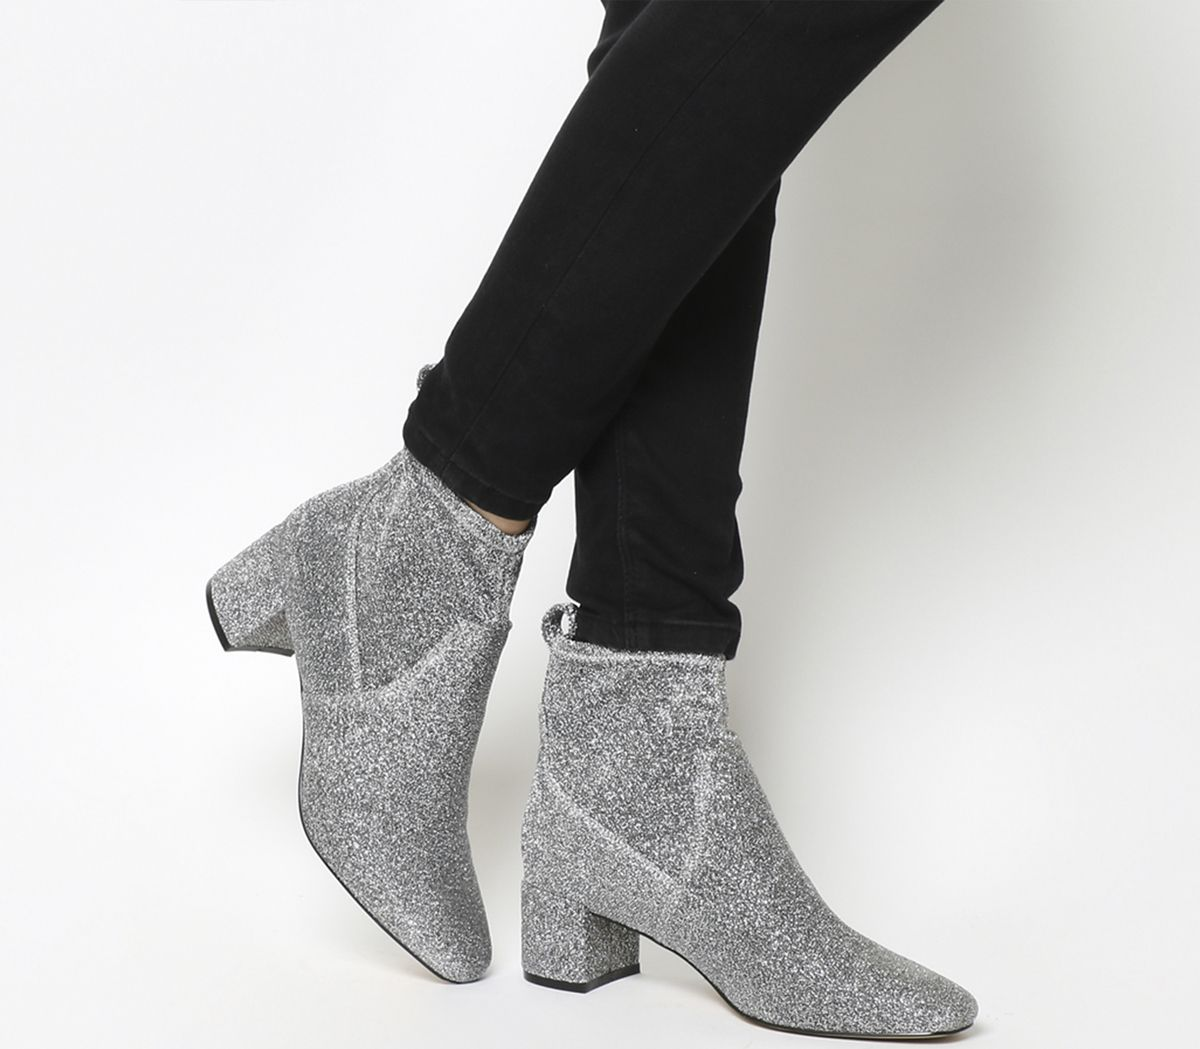 105dca0f1167 Office Lurex Mid Block Heel Stretch Boots Silver Glitter - Ankle Boots